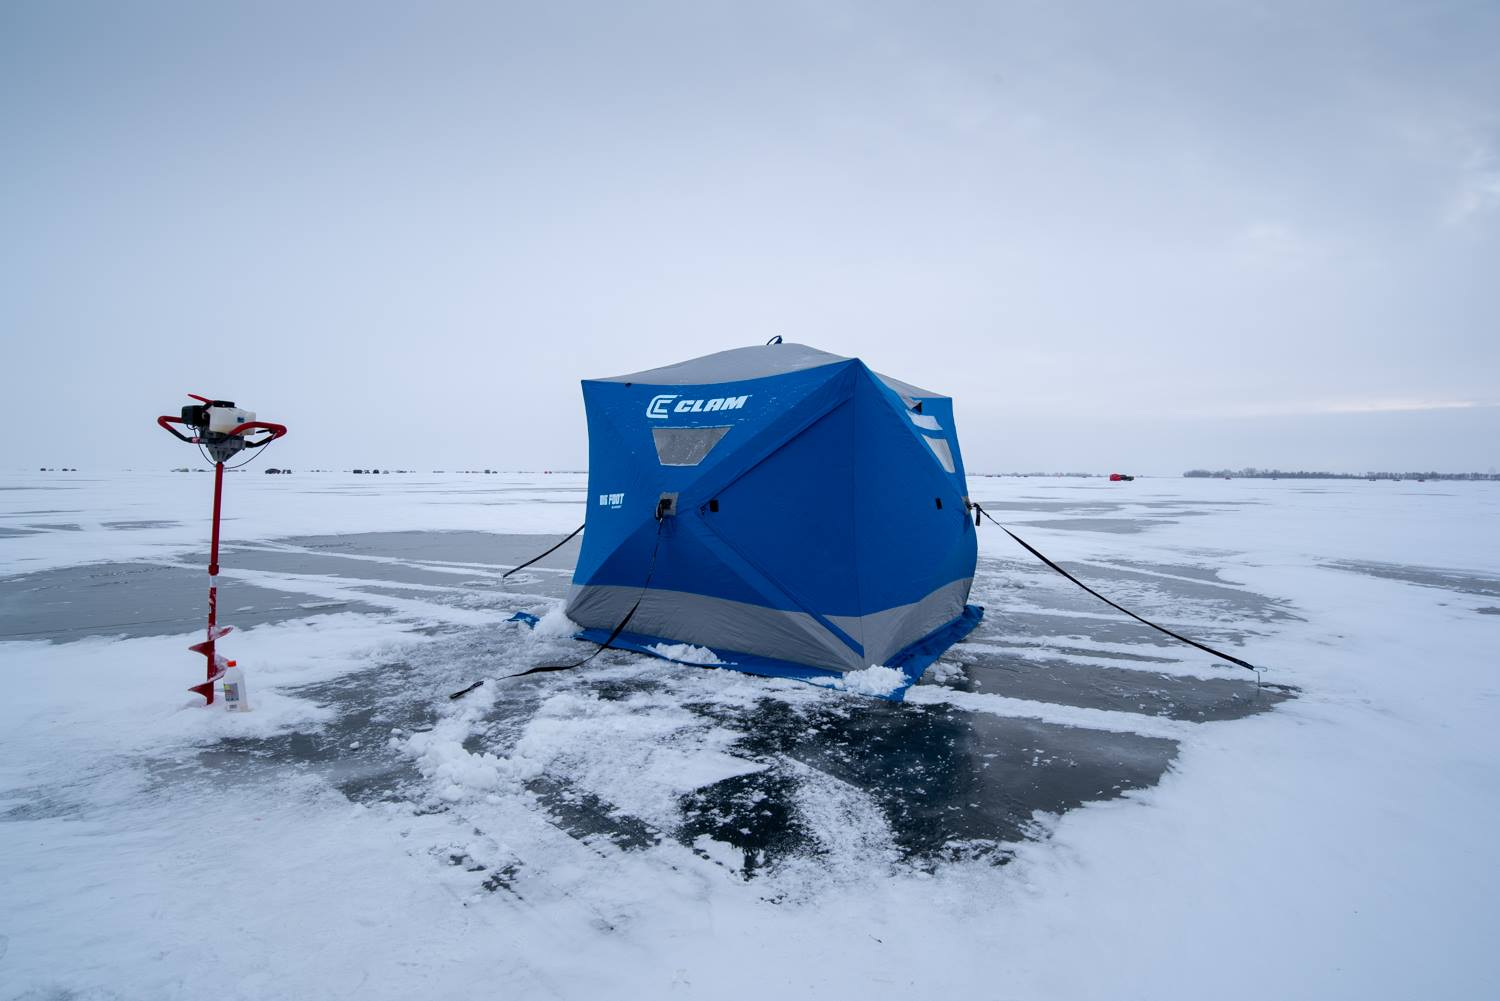 The ice fishing tent all set up.